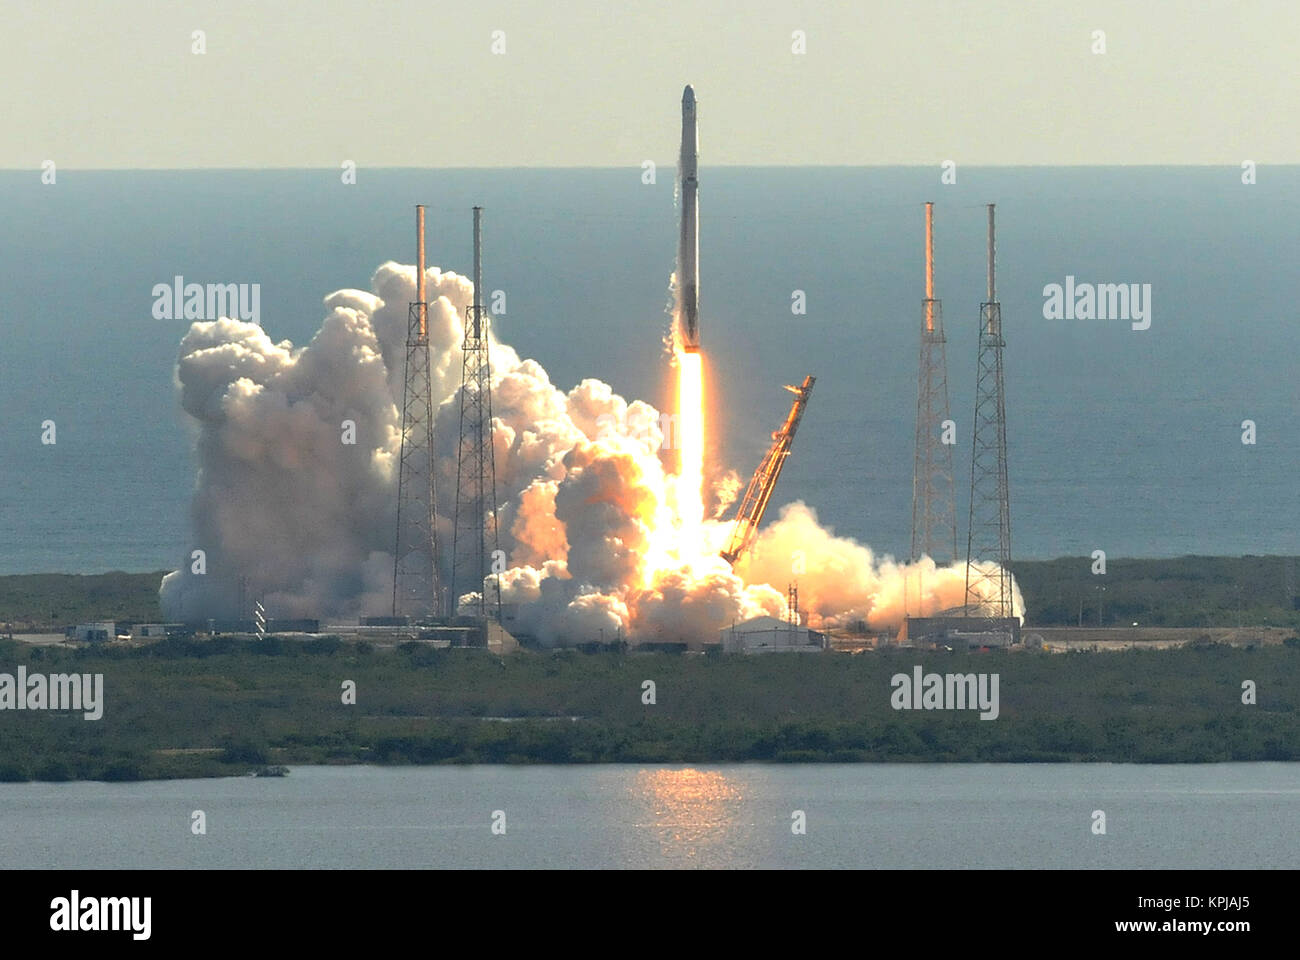 Cape Canaveral, United States. 15th Dec, 2017. December 15, 2017 - Cape Canaveral, Florida, United States - A SpaceX - Stock Image